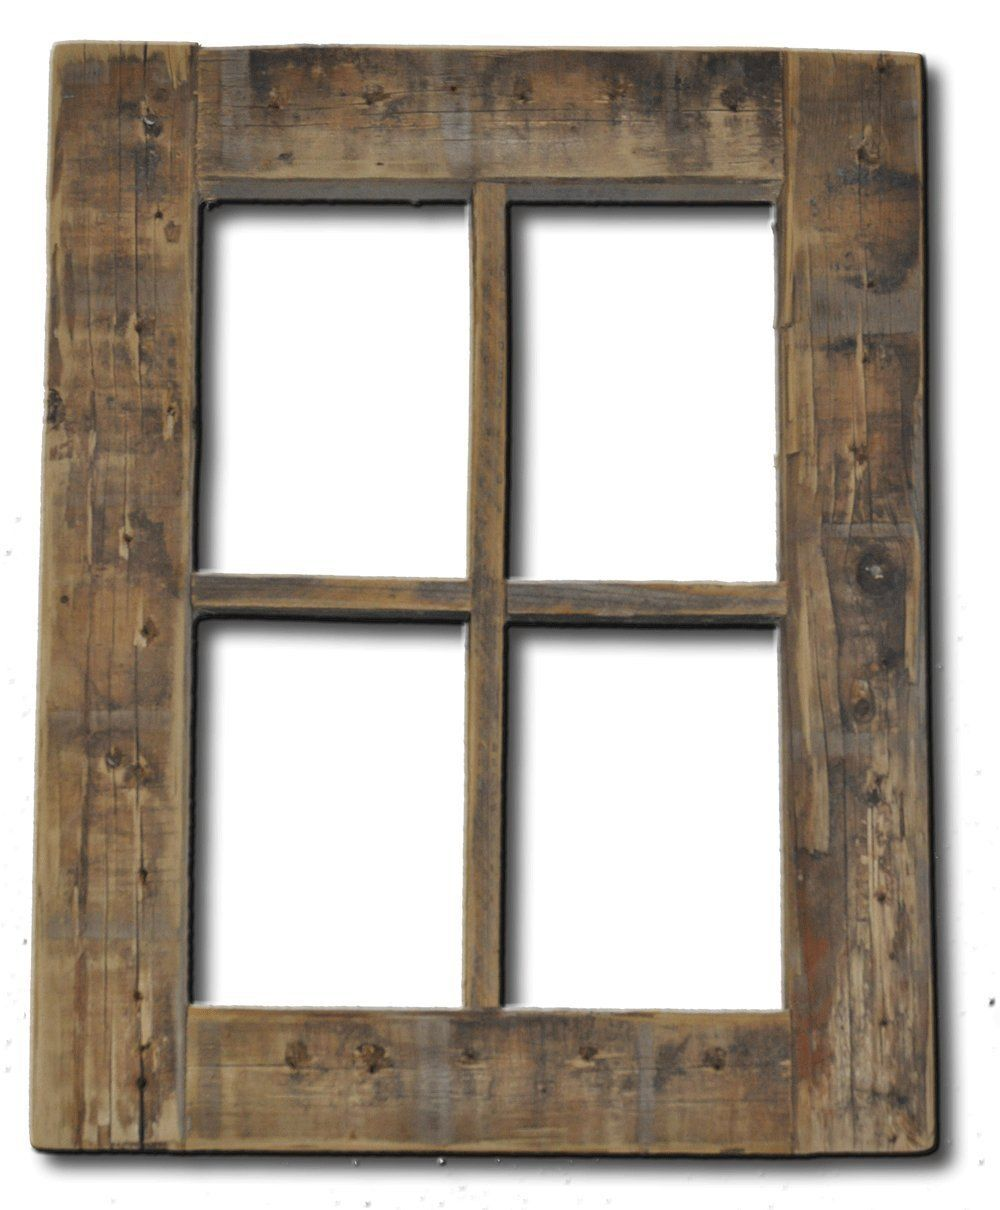 Amazon.com - Primitive Rustic Window Frame. Plus Free Shipping ...